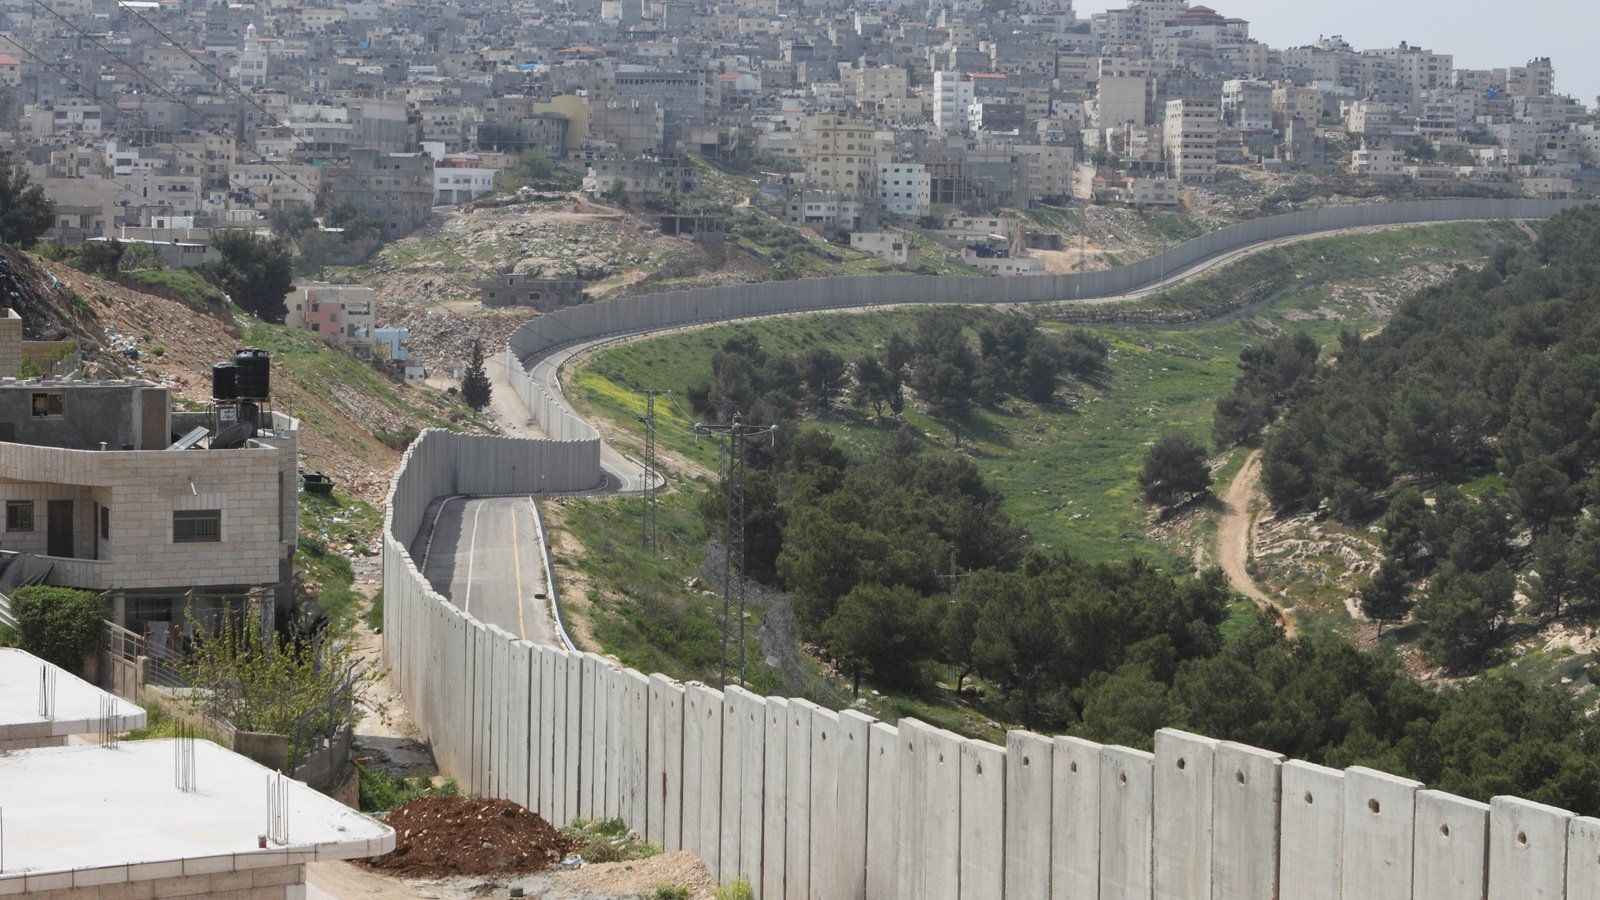 West Bank Wall   Palestinian Christians